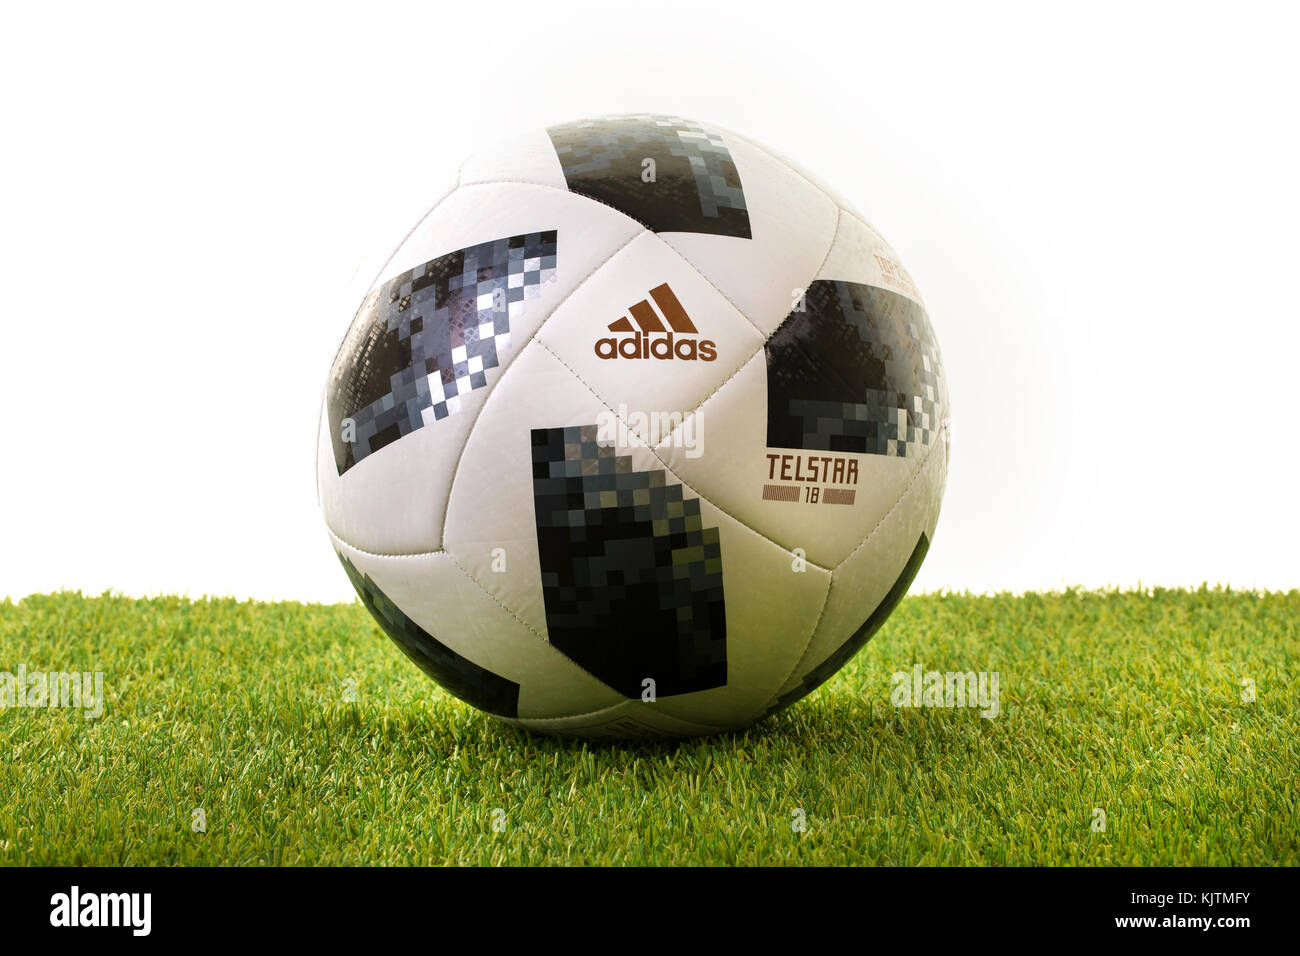 SWINDON, UK - NOVEMBER 18, 2017: Adidas Telstar Top Glider World Cup 2018 Football, The Official Matchball for the - Stock Image